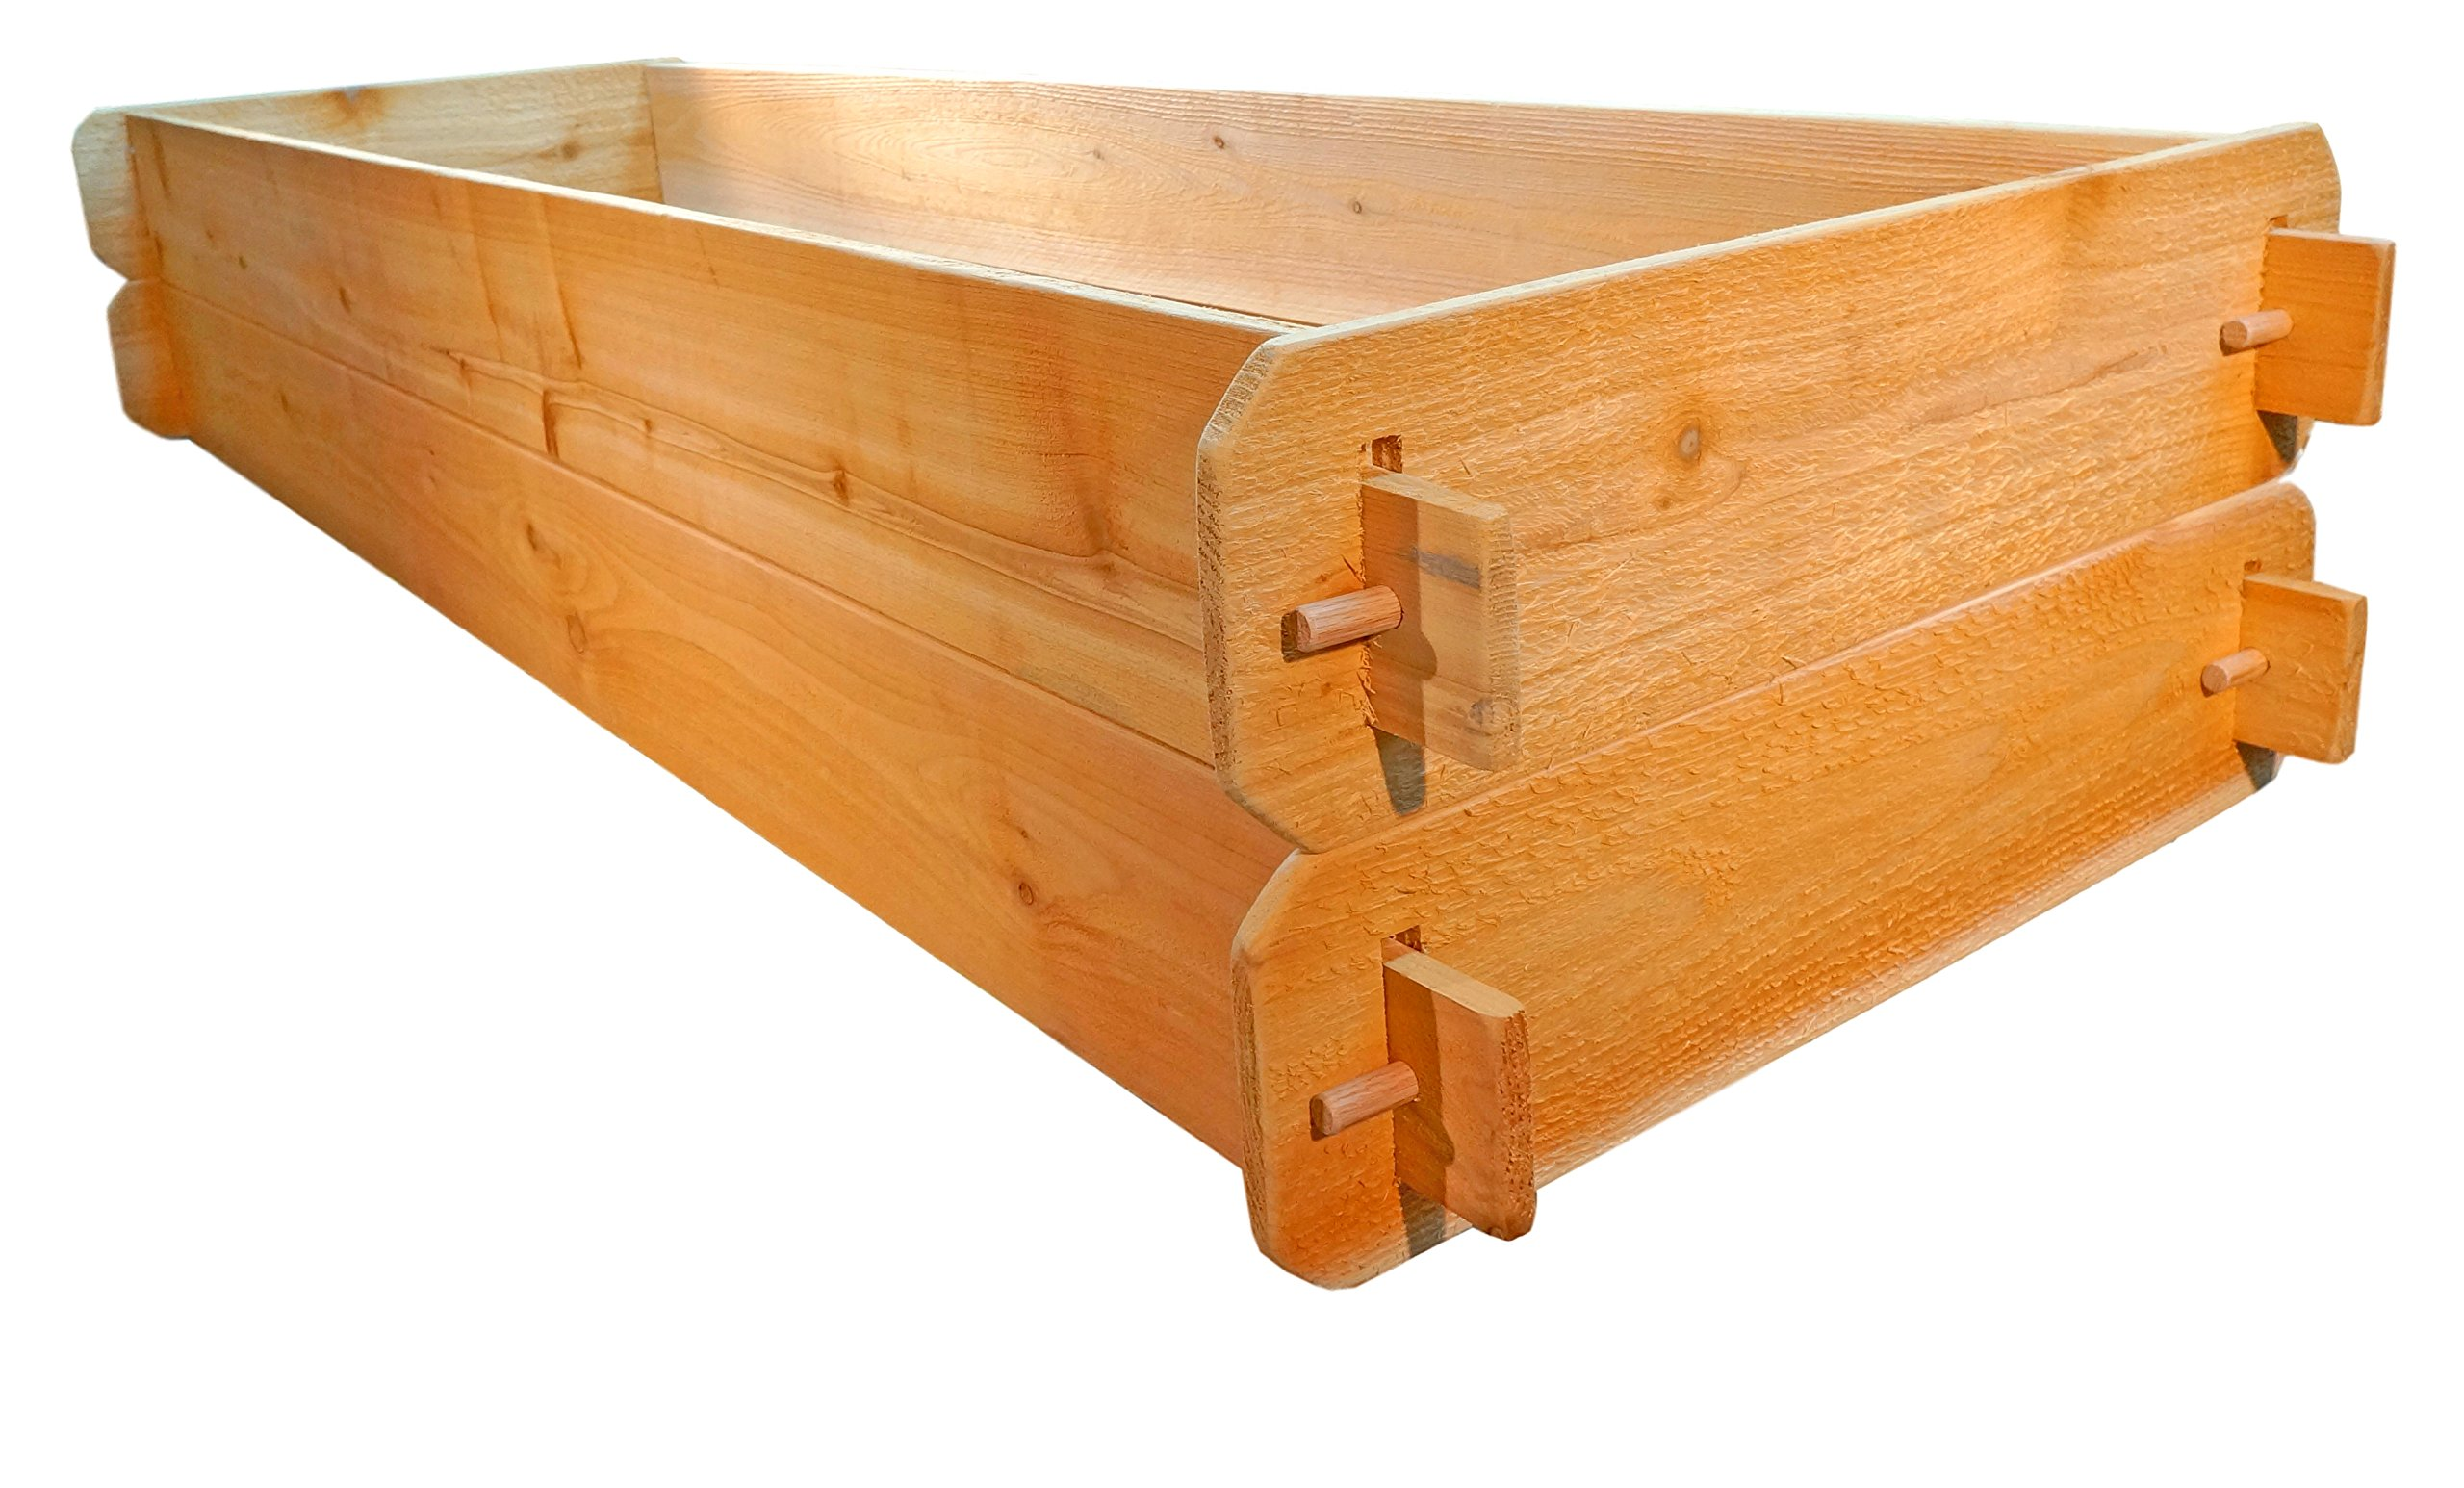 """Timberlane Gardens Raised Bed Kit Double Deep (Two) Western Red Cedar with Mortise and Tenon Joinery, 24"""" W x 72"""" L 2 Raised Garden Bed Kit Proudly Made in Homer Glen, Illinois USA. Constructed of Select Western Red Cedar. Aromatic and Naturally Insect & Rot Resistant. Handcrafted Mortise & Tenon Joinery. The Strongest Corner Joints Available."""